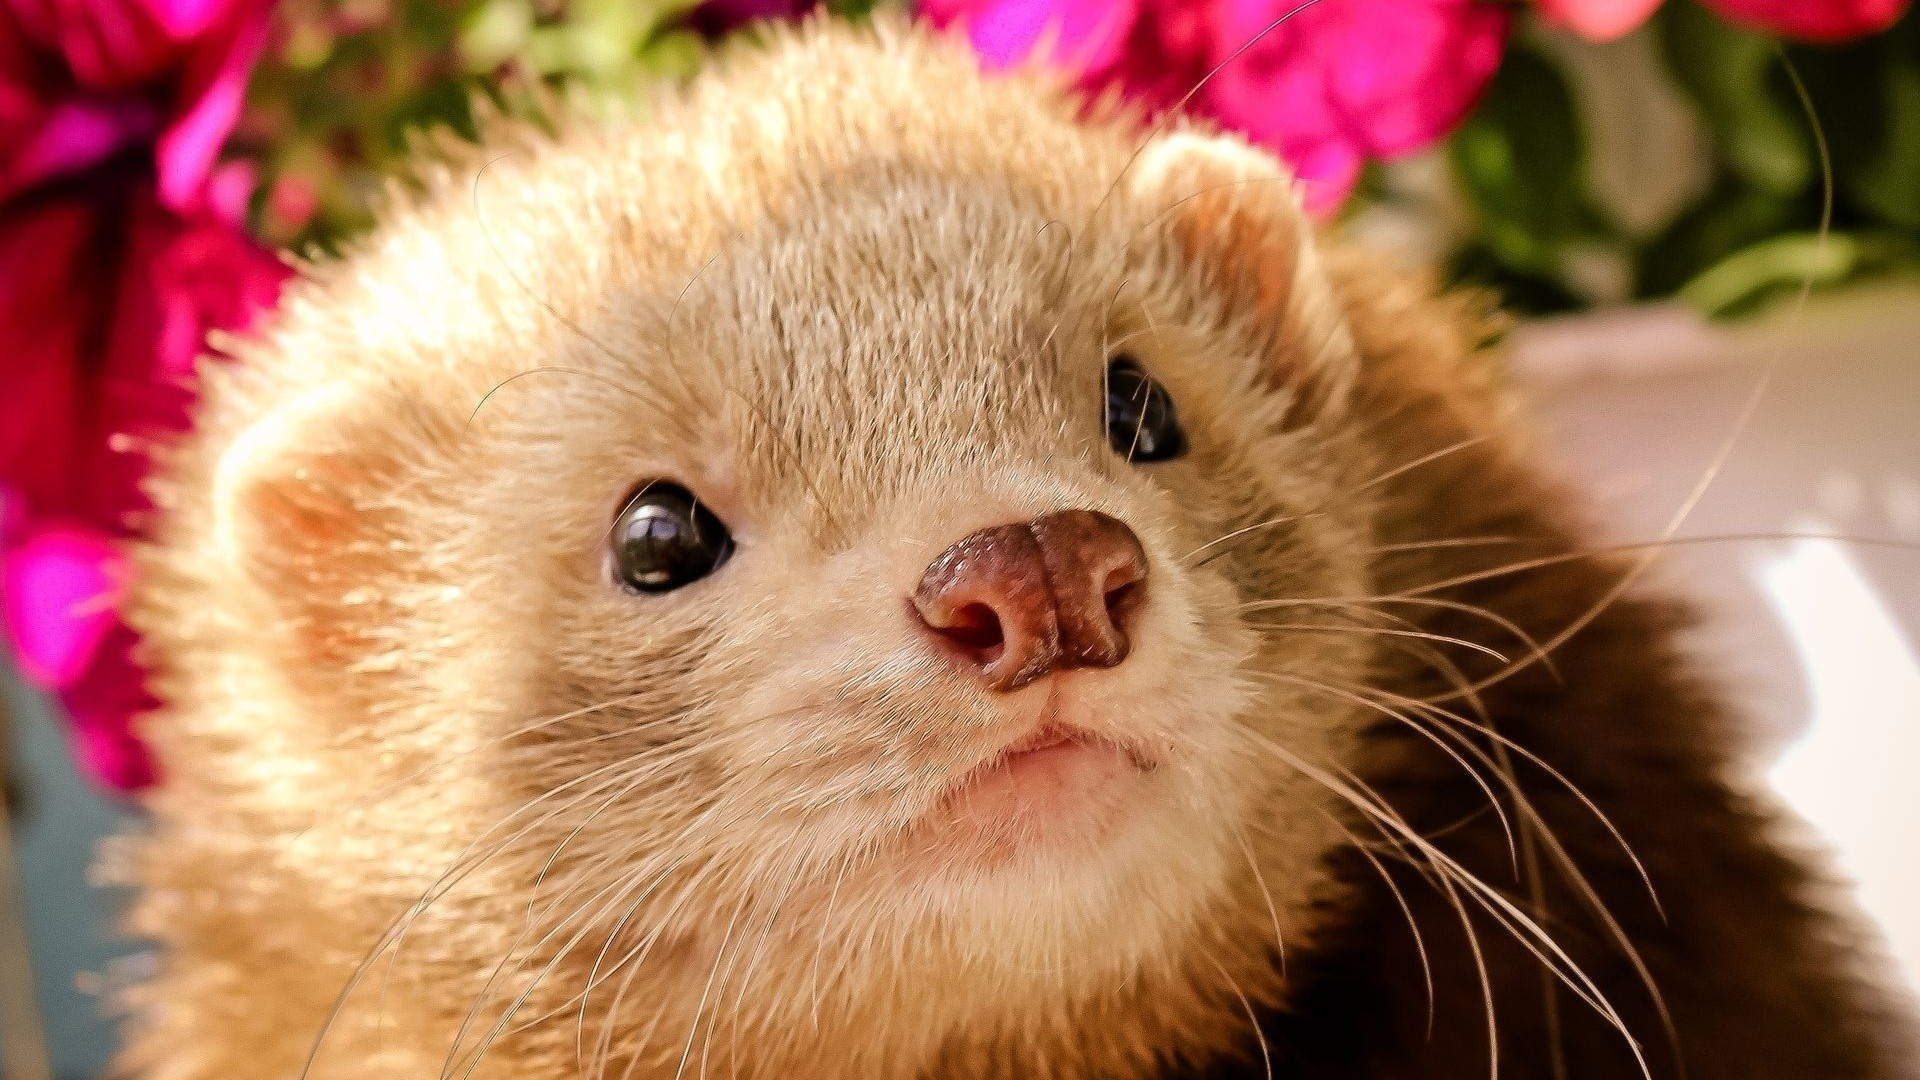 Res: 1920x1080, Get the latest ferret, face, eyes news, pictures and videos and learn all  about ferret, face, eyes from wallpapers4u.org, your wallpaper news source.